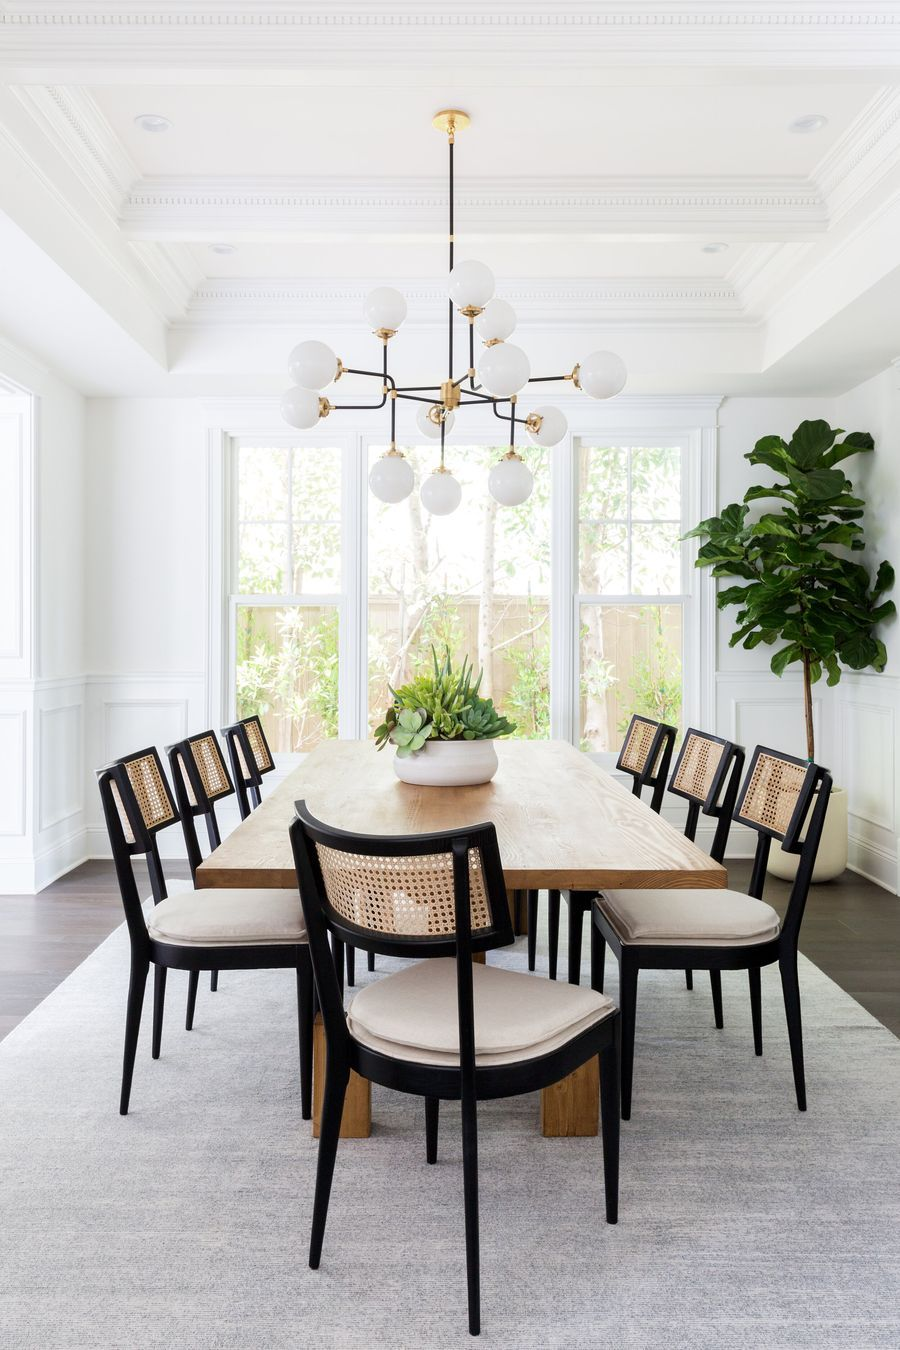 15 Perfect Dining Room Chairs According To Your Style Dining Room Interiors Casual Dining Rooms Living Dining Room Decor dining room chairs